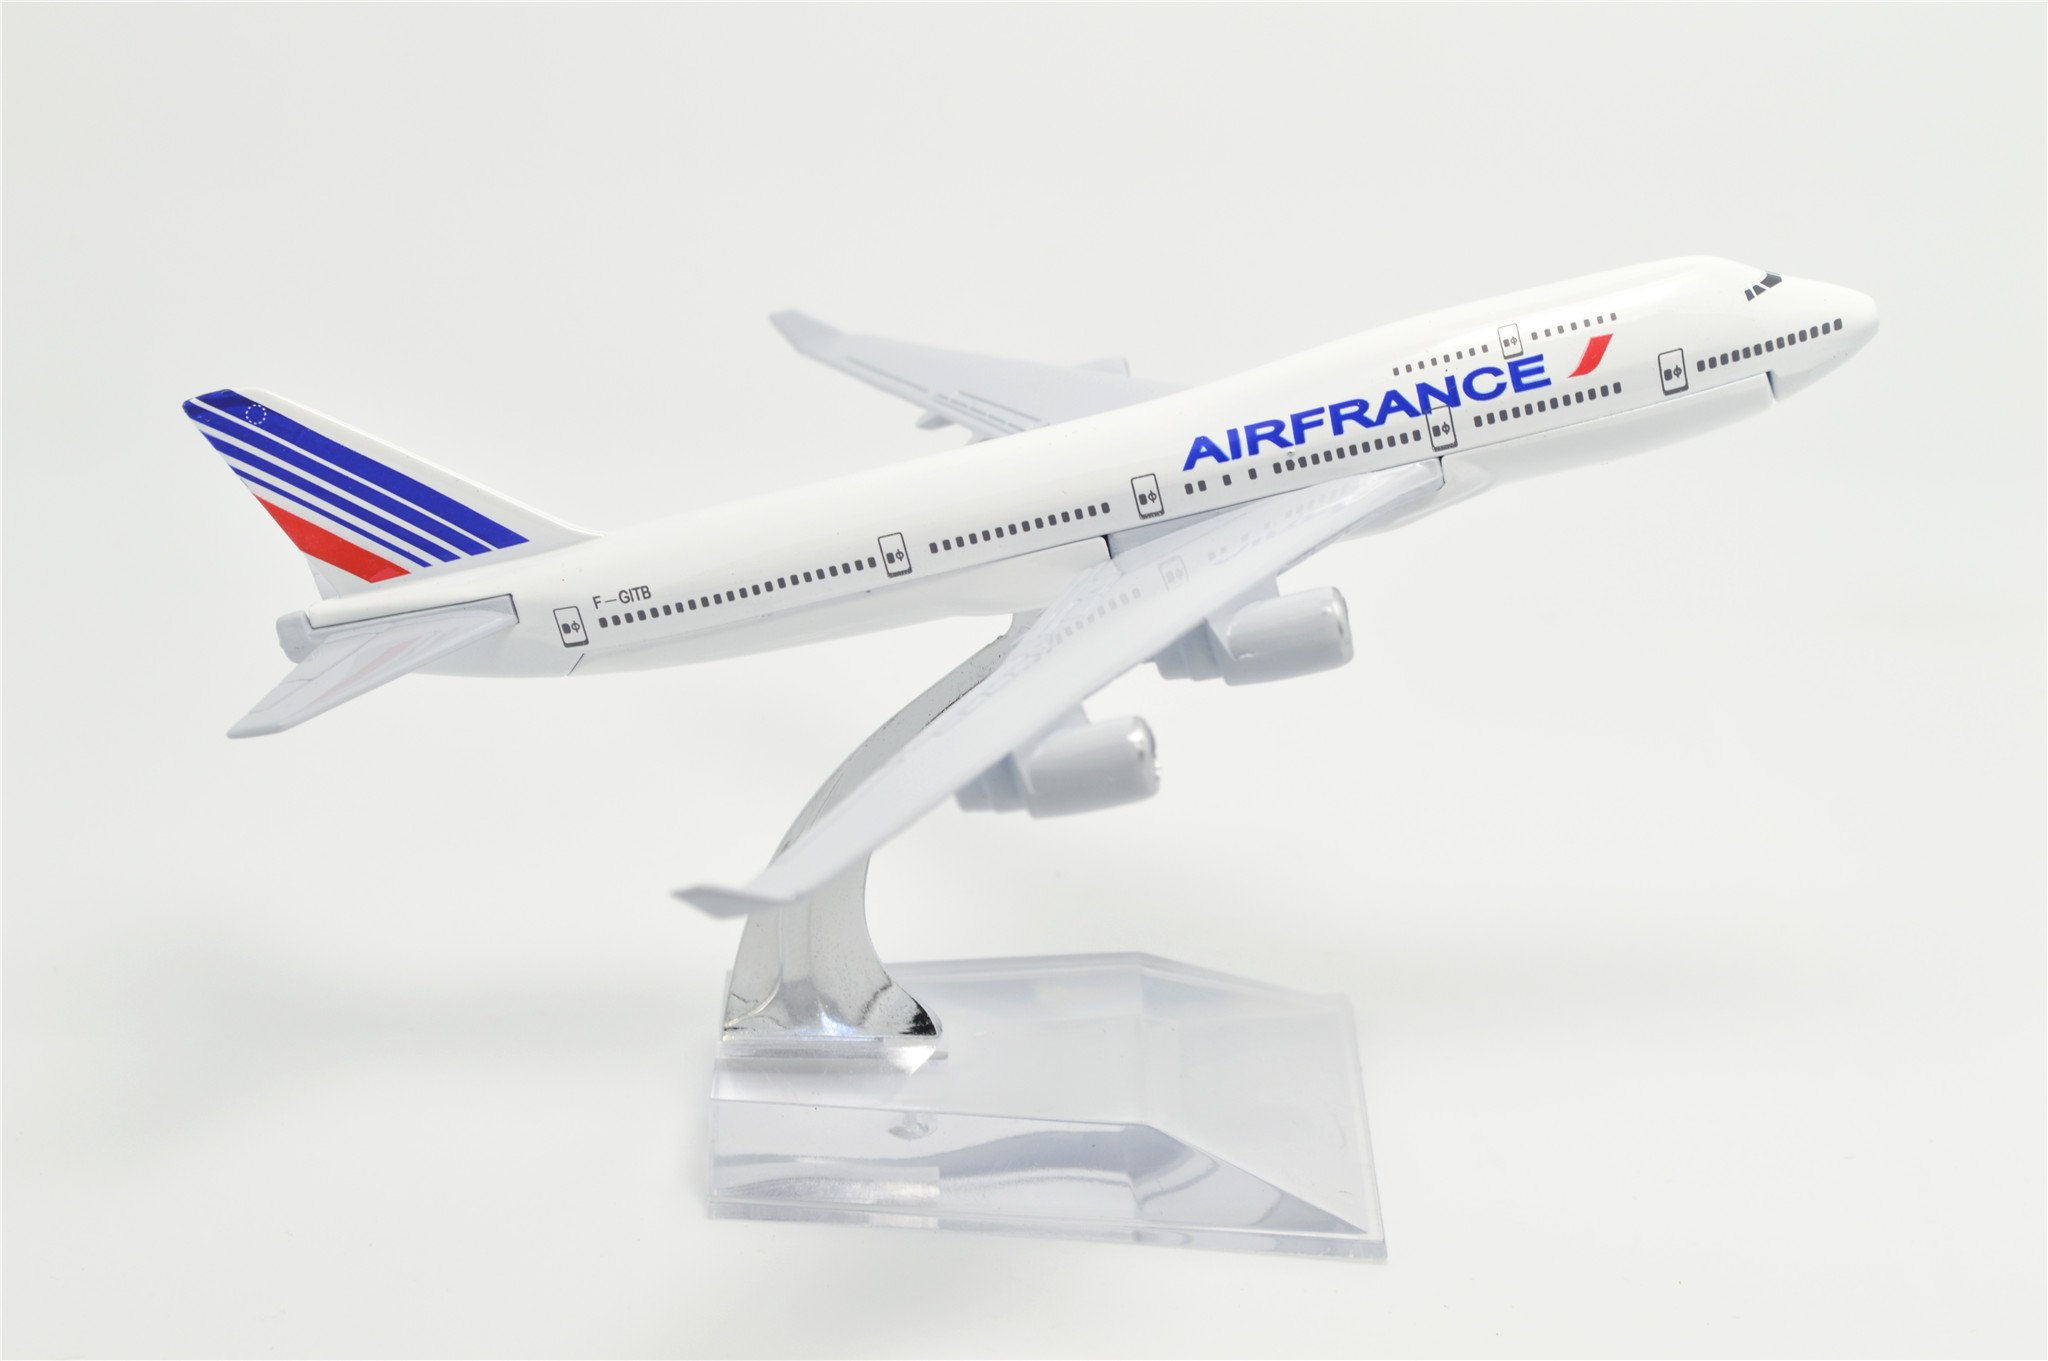 Buy Air FranceProducts Now!